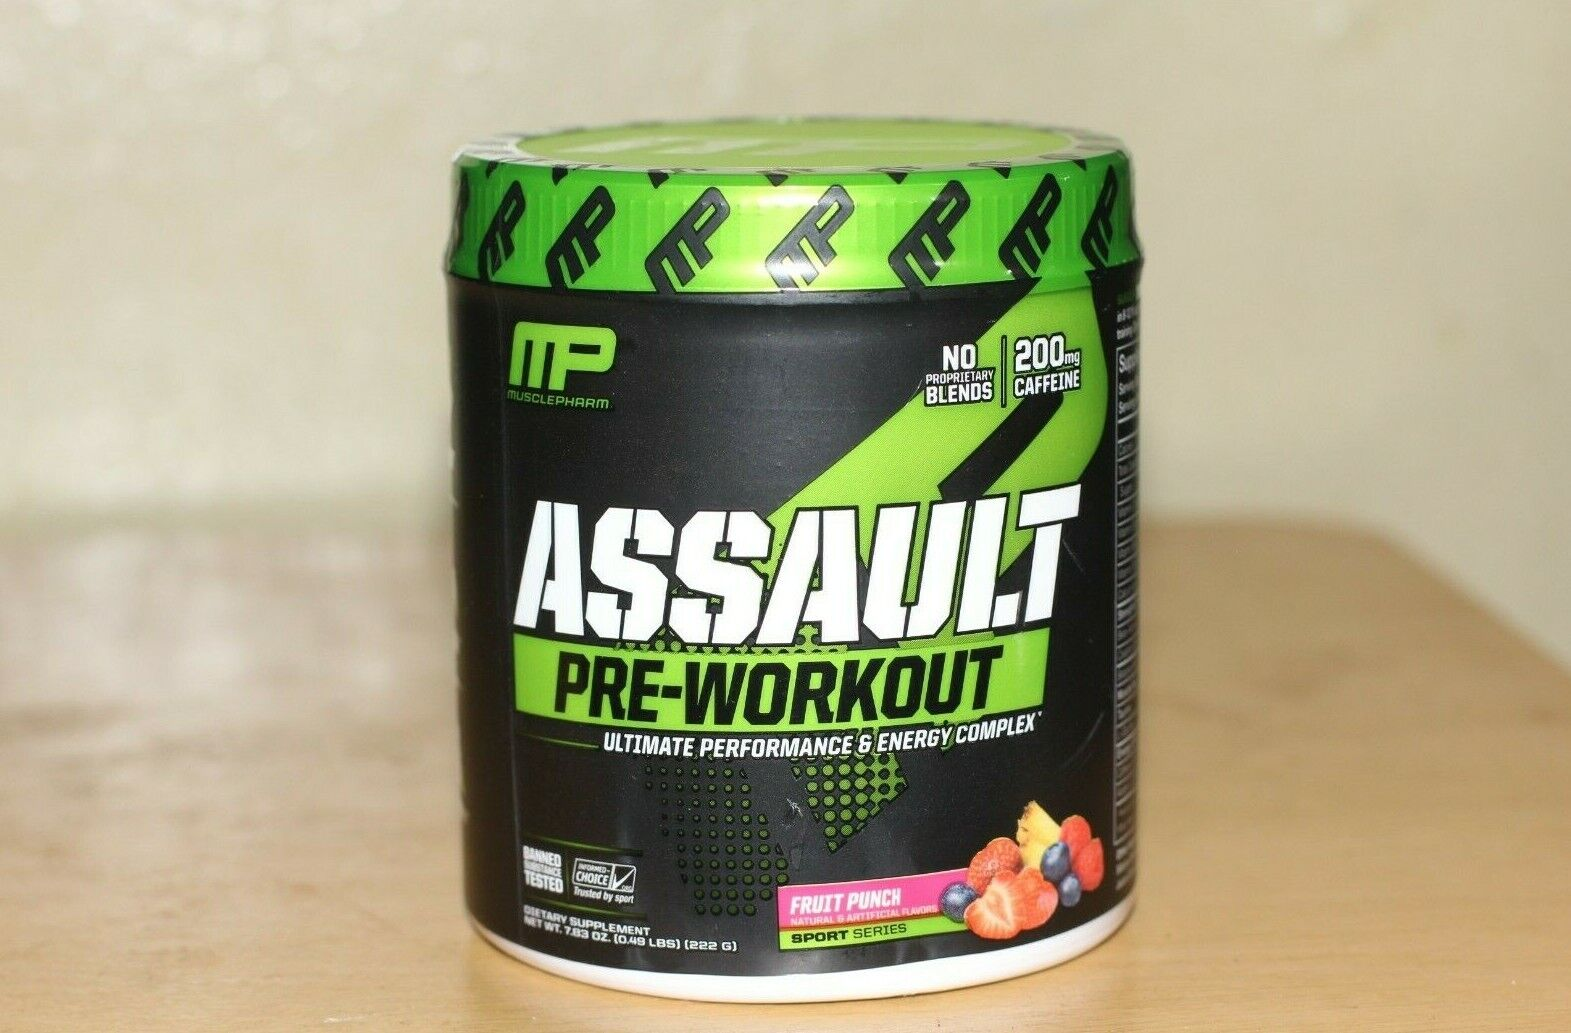 MusclePharm Assault Sport Nutrition Powder, Fruit Punch, 30